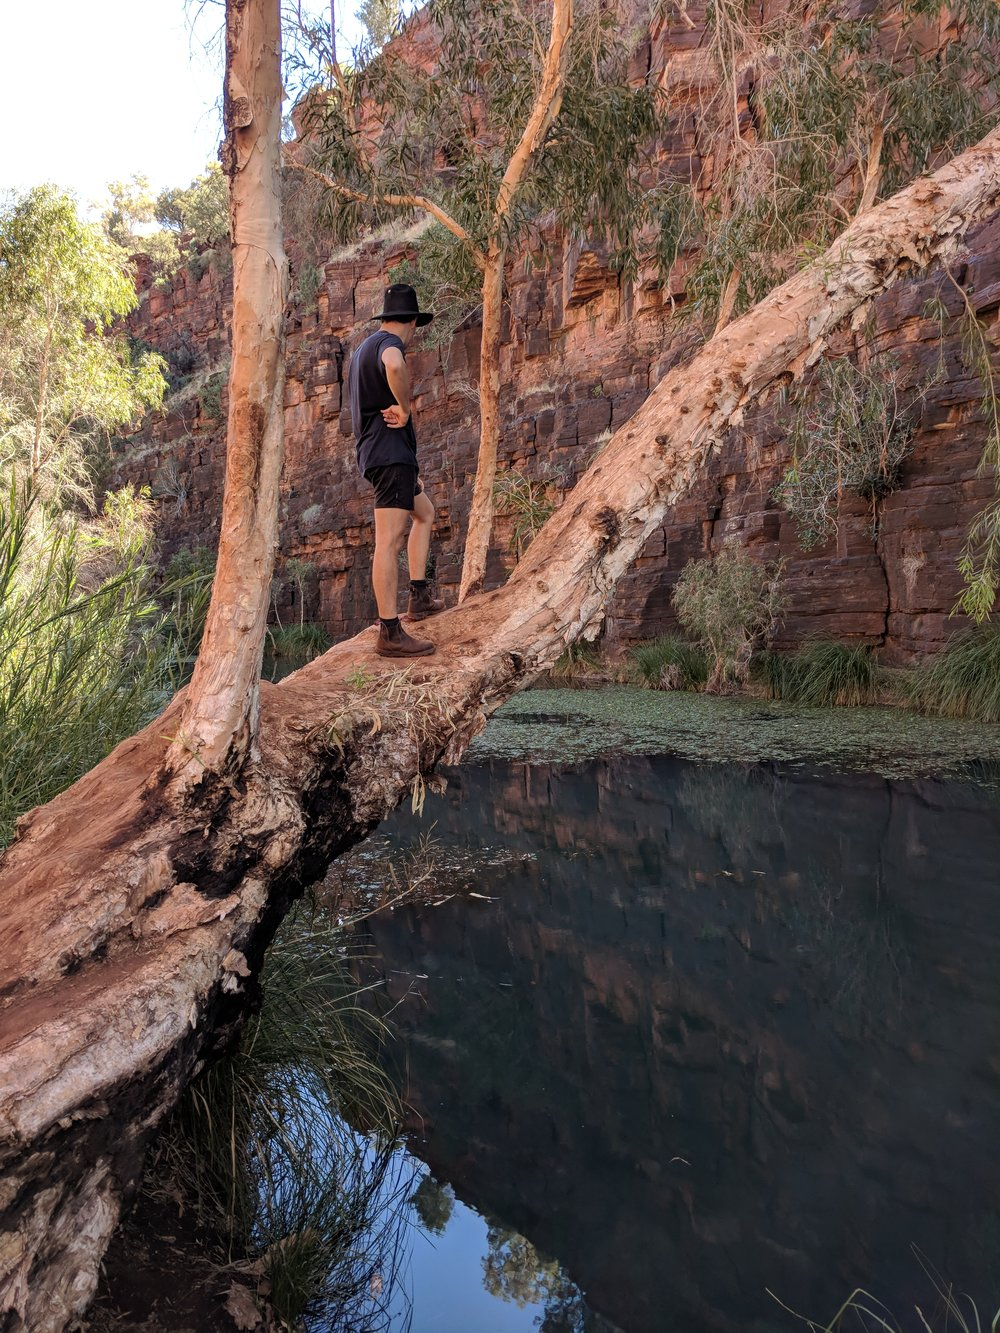 An image from the 'in-between' (Meekatharra - Darwin) - Karajini National Park. feat Owen in a hat